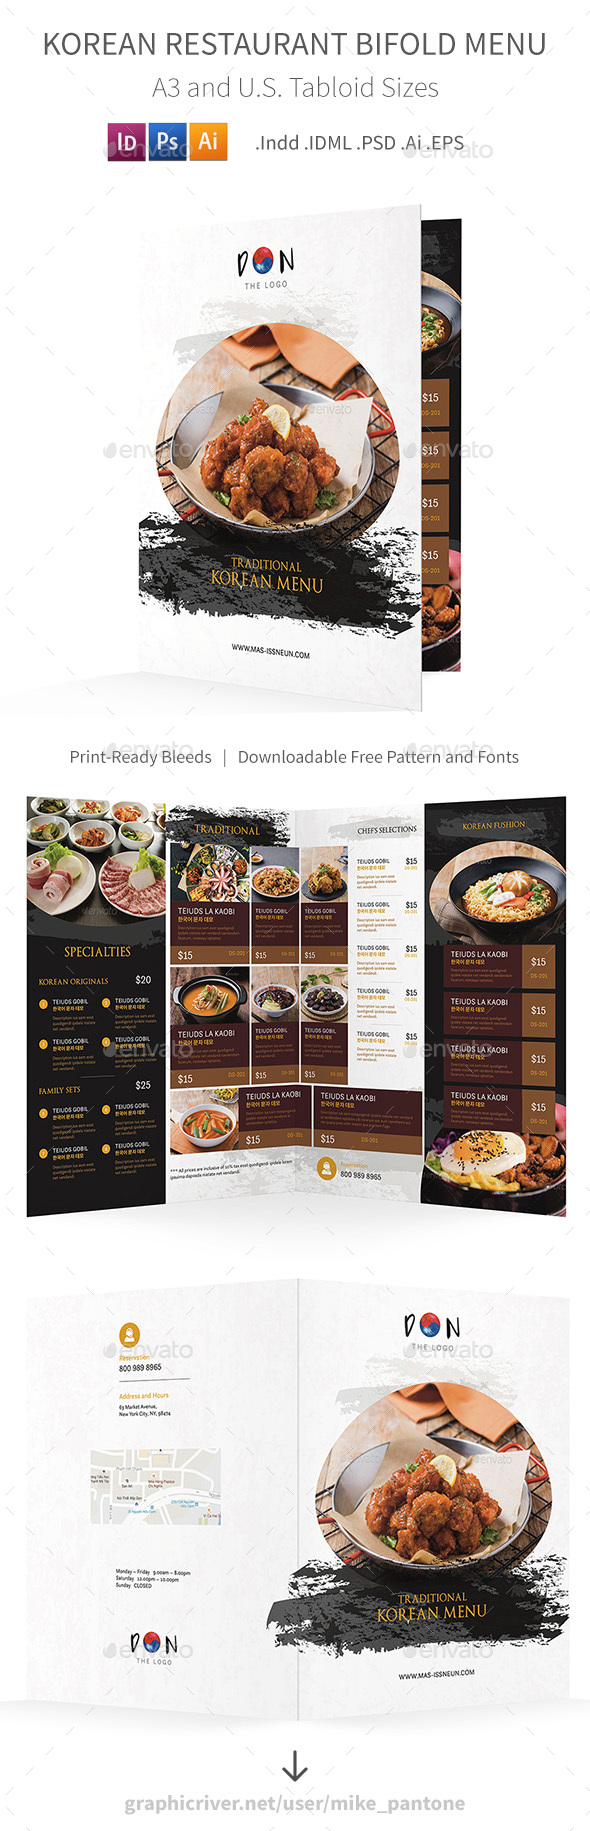 InDesign Menu Templates from GraphicRiver (Page 10)